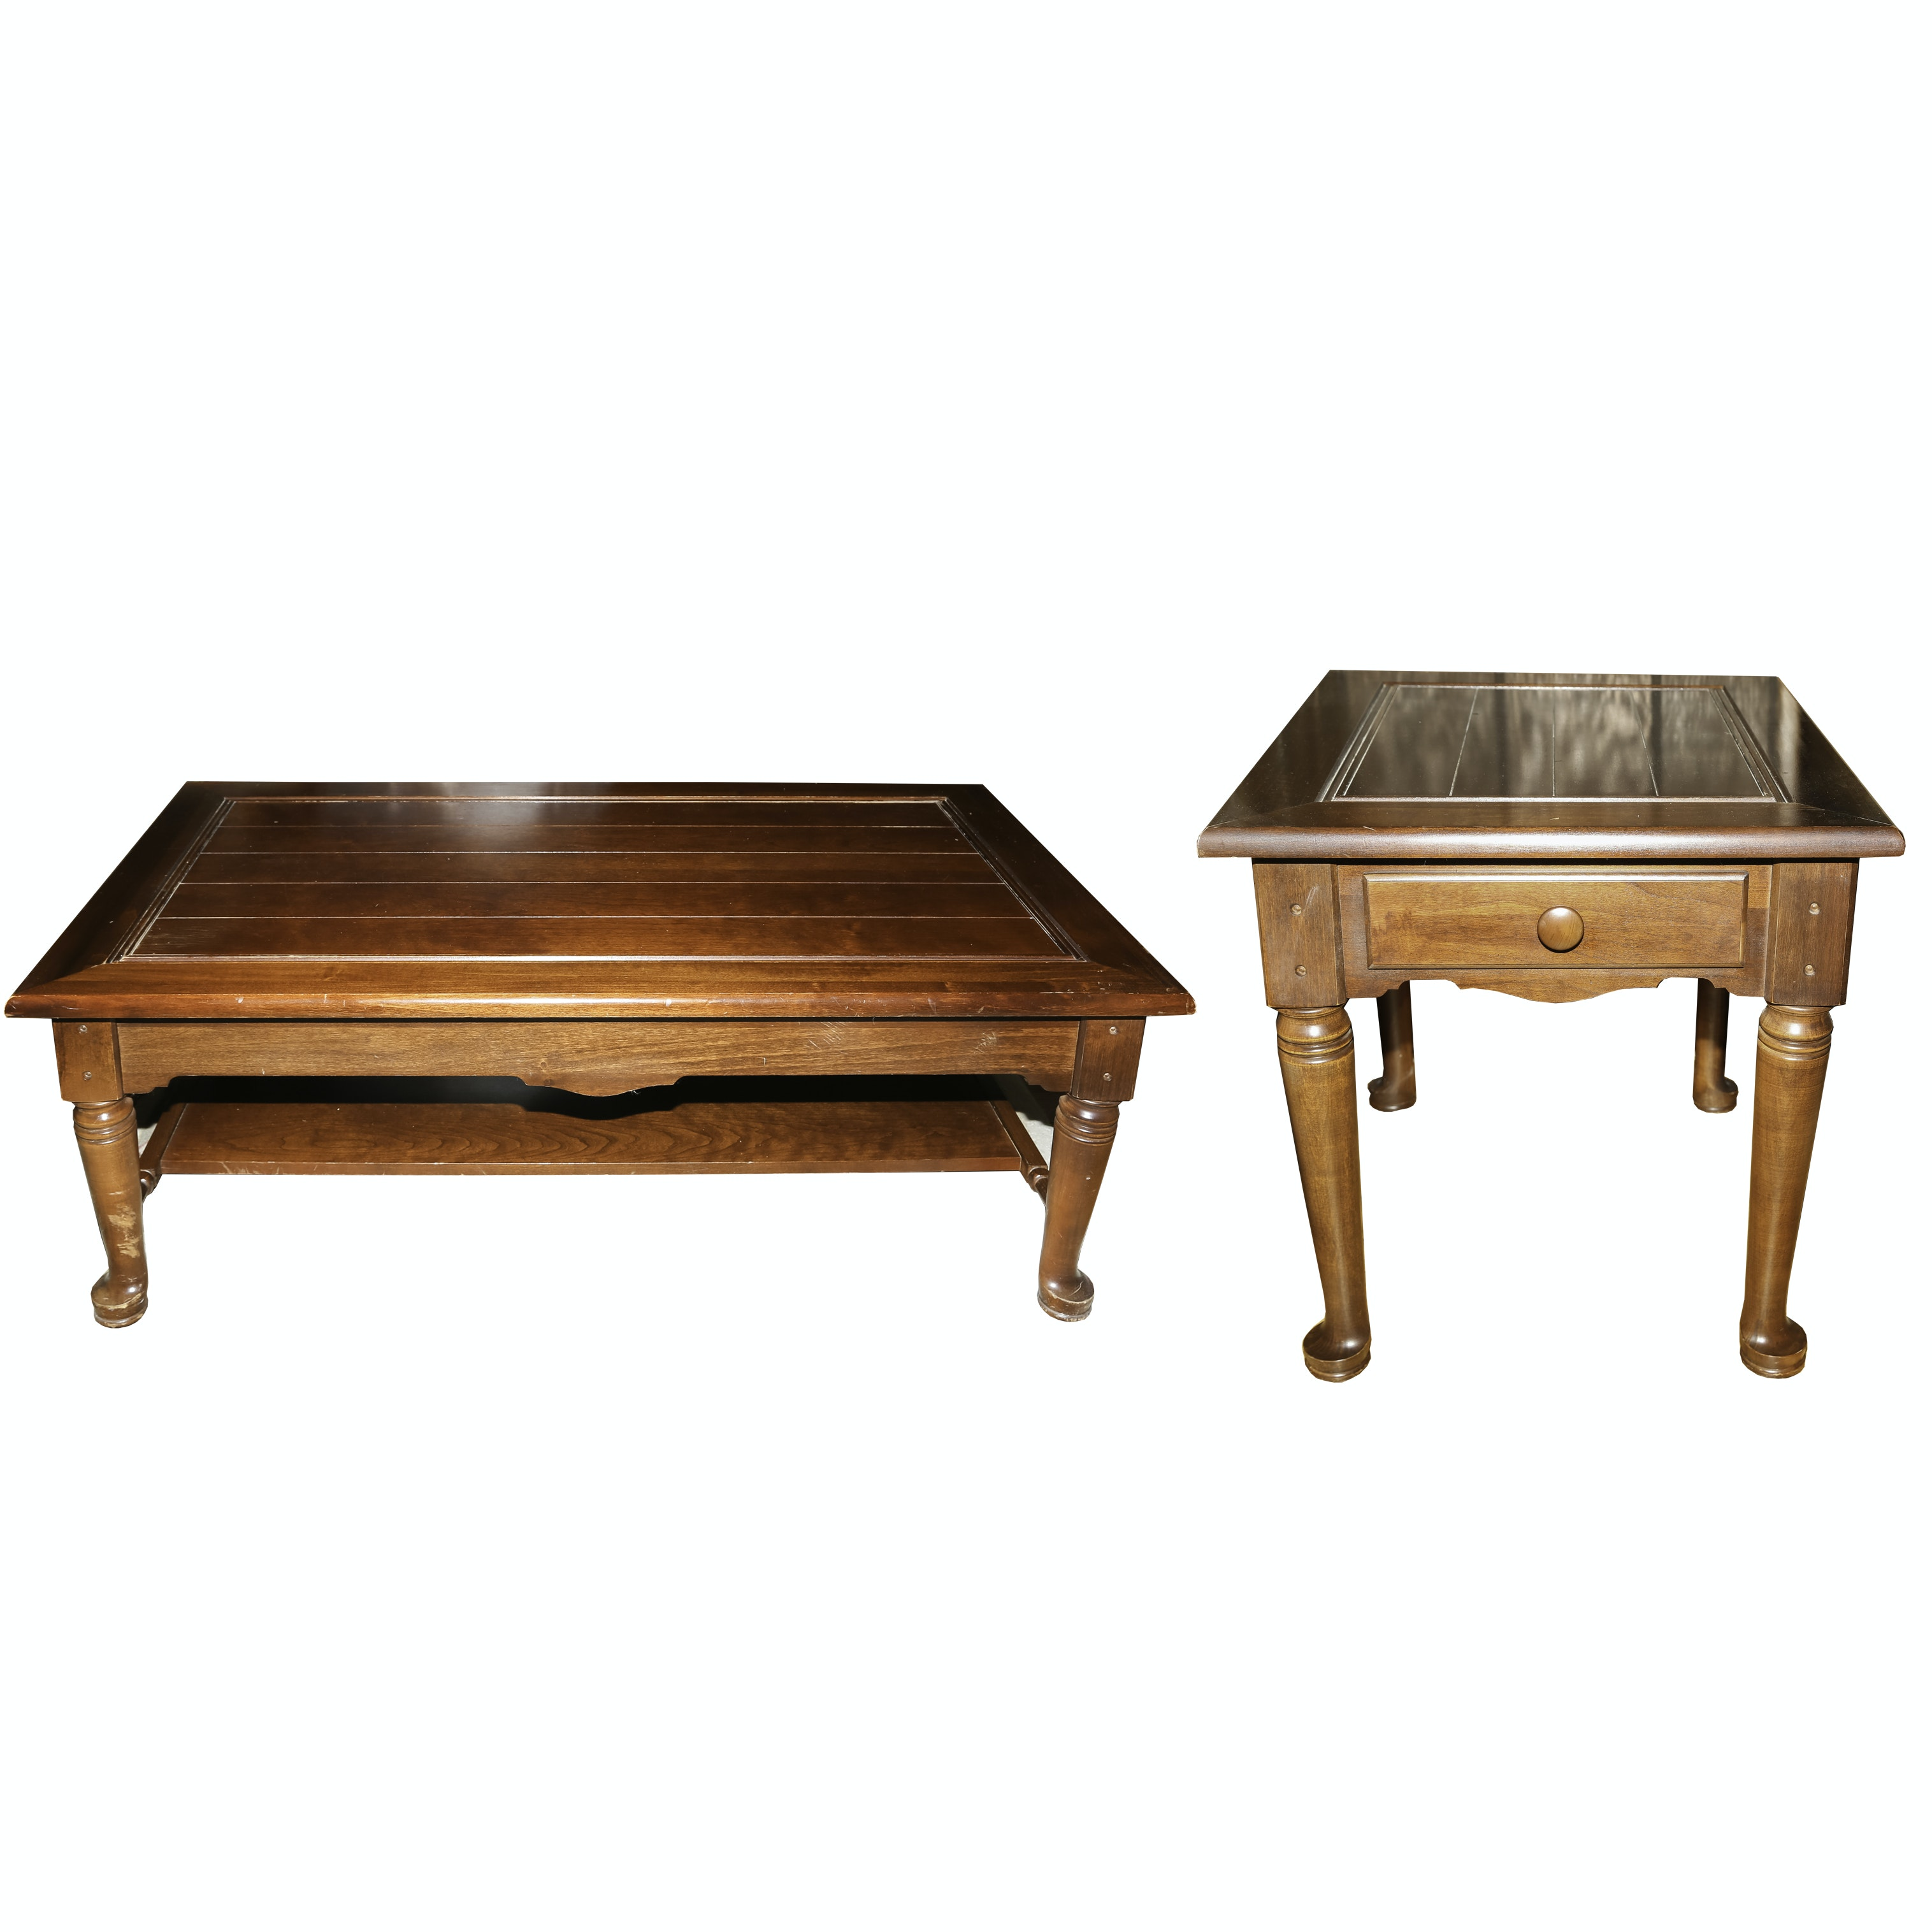 Coffee Table and End Table by Bassett